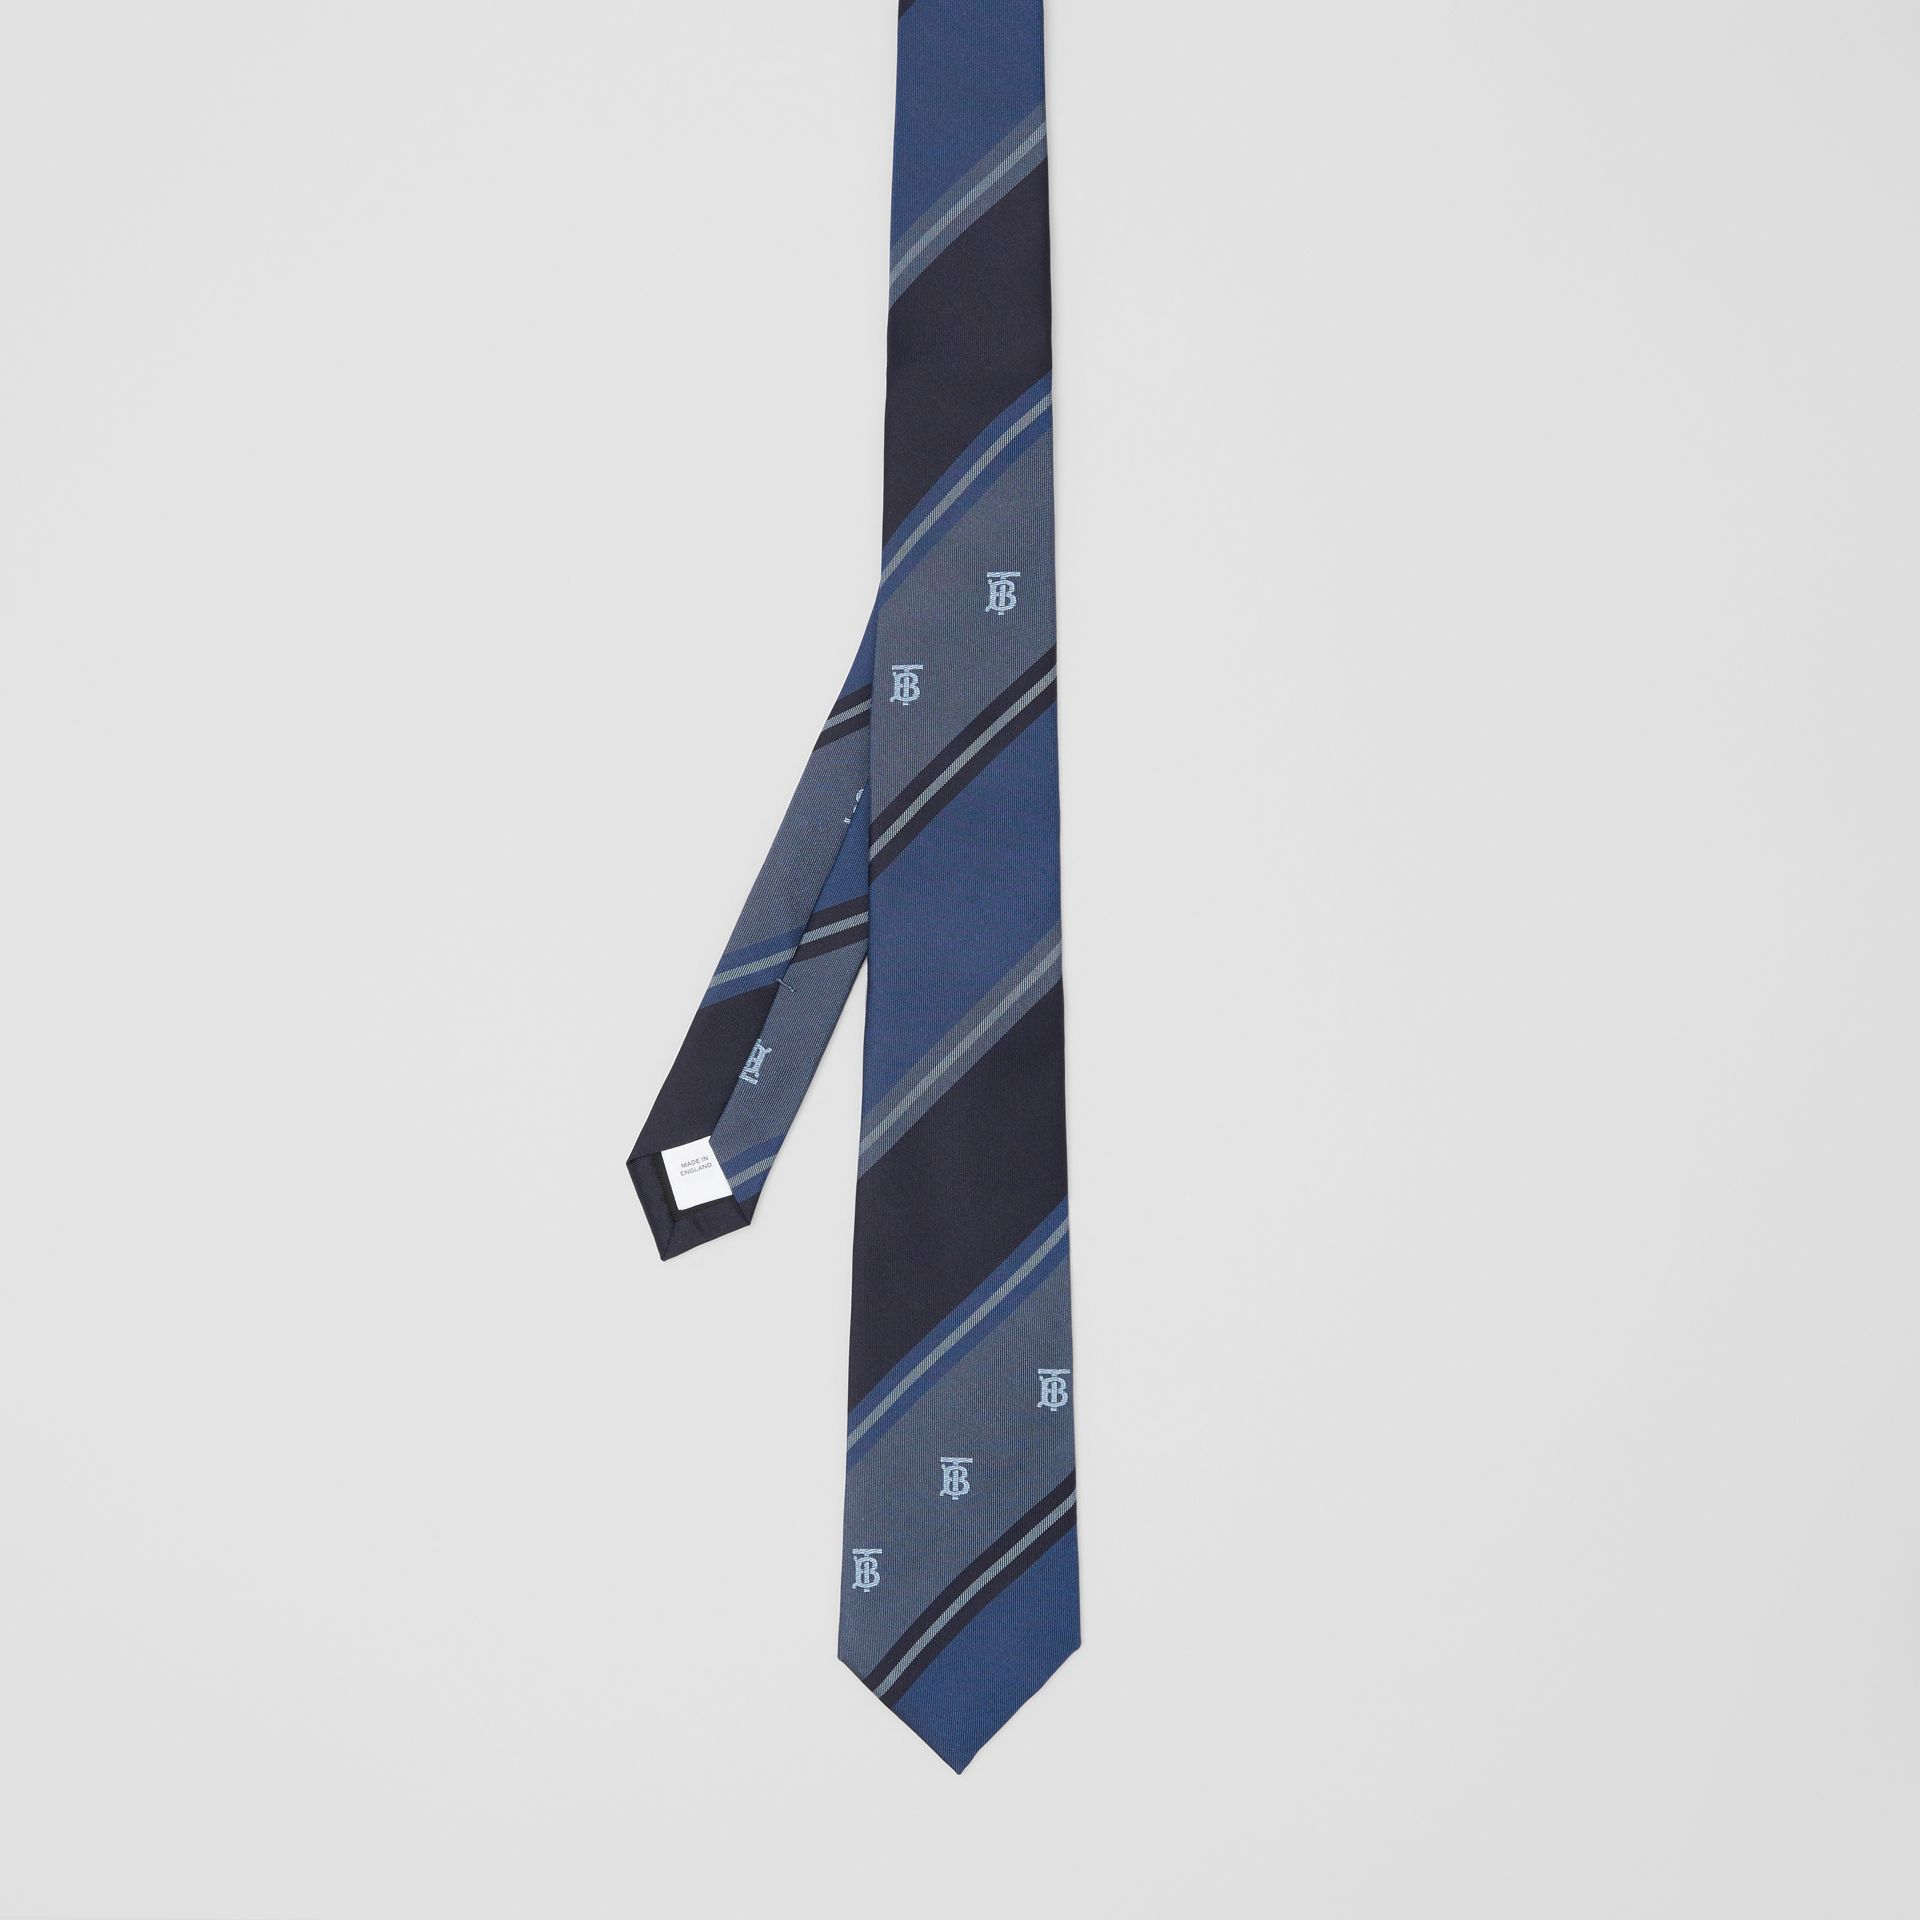 Classic Cut Monogram Motif Striped Silk Jacquard Tie in Bright Steel Blue - Men | Burberry - gallery image 4